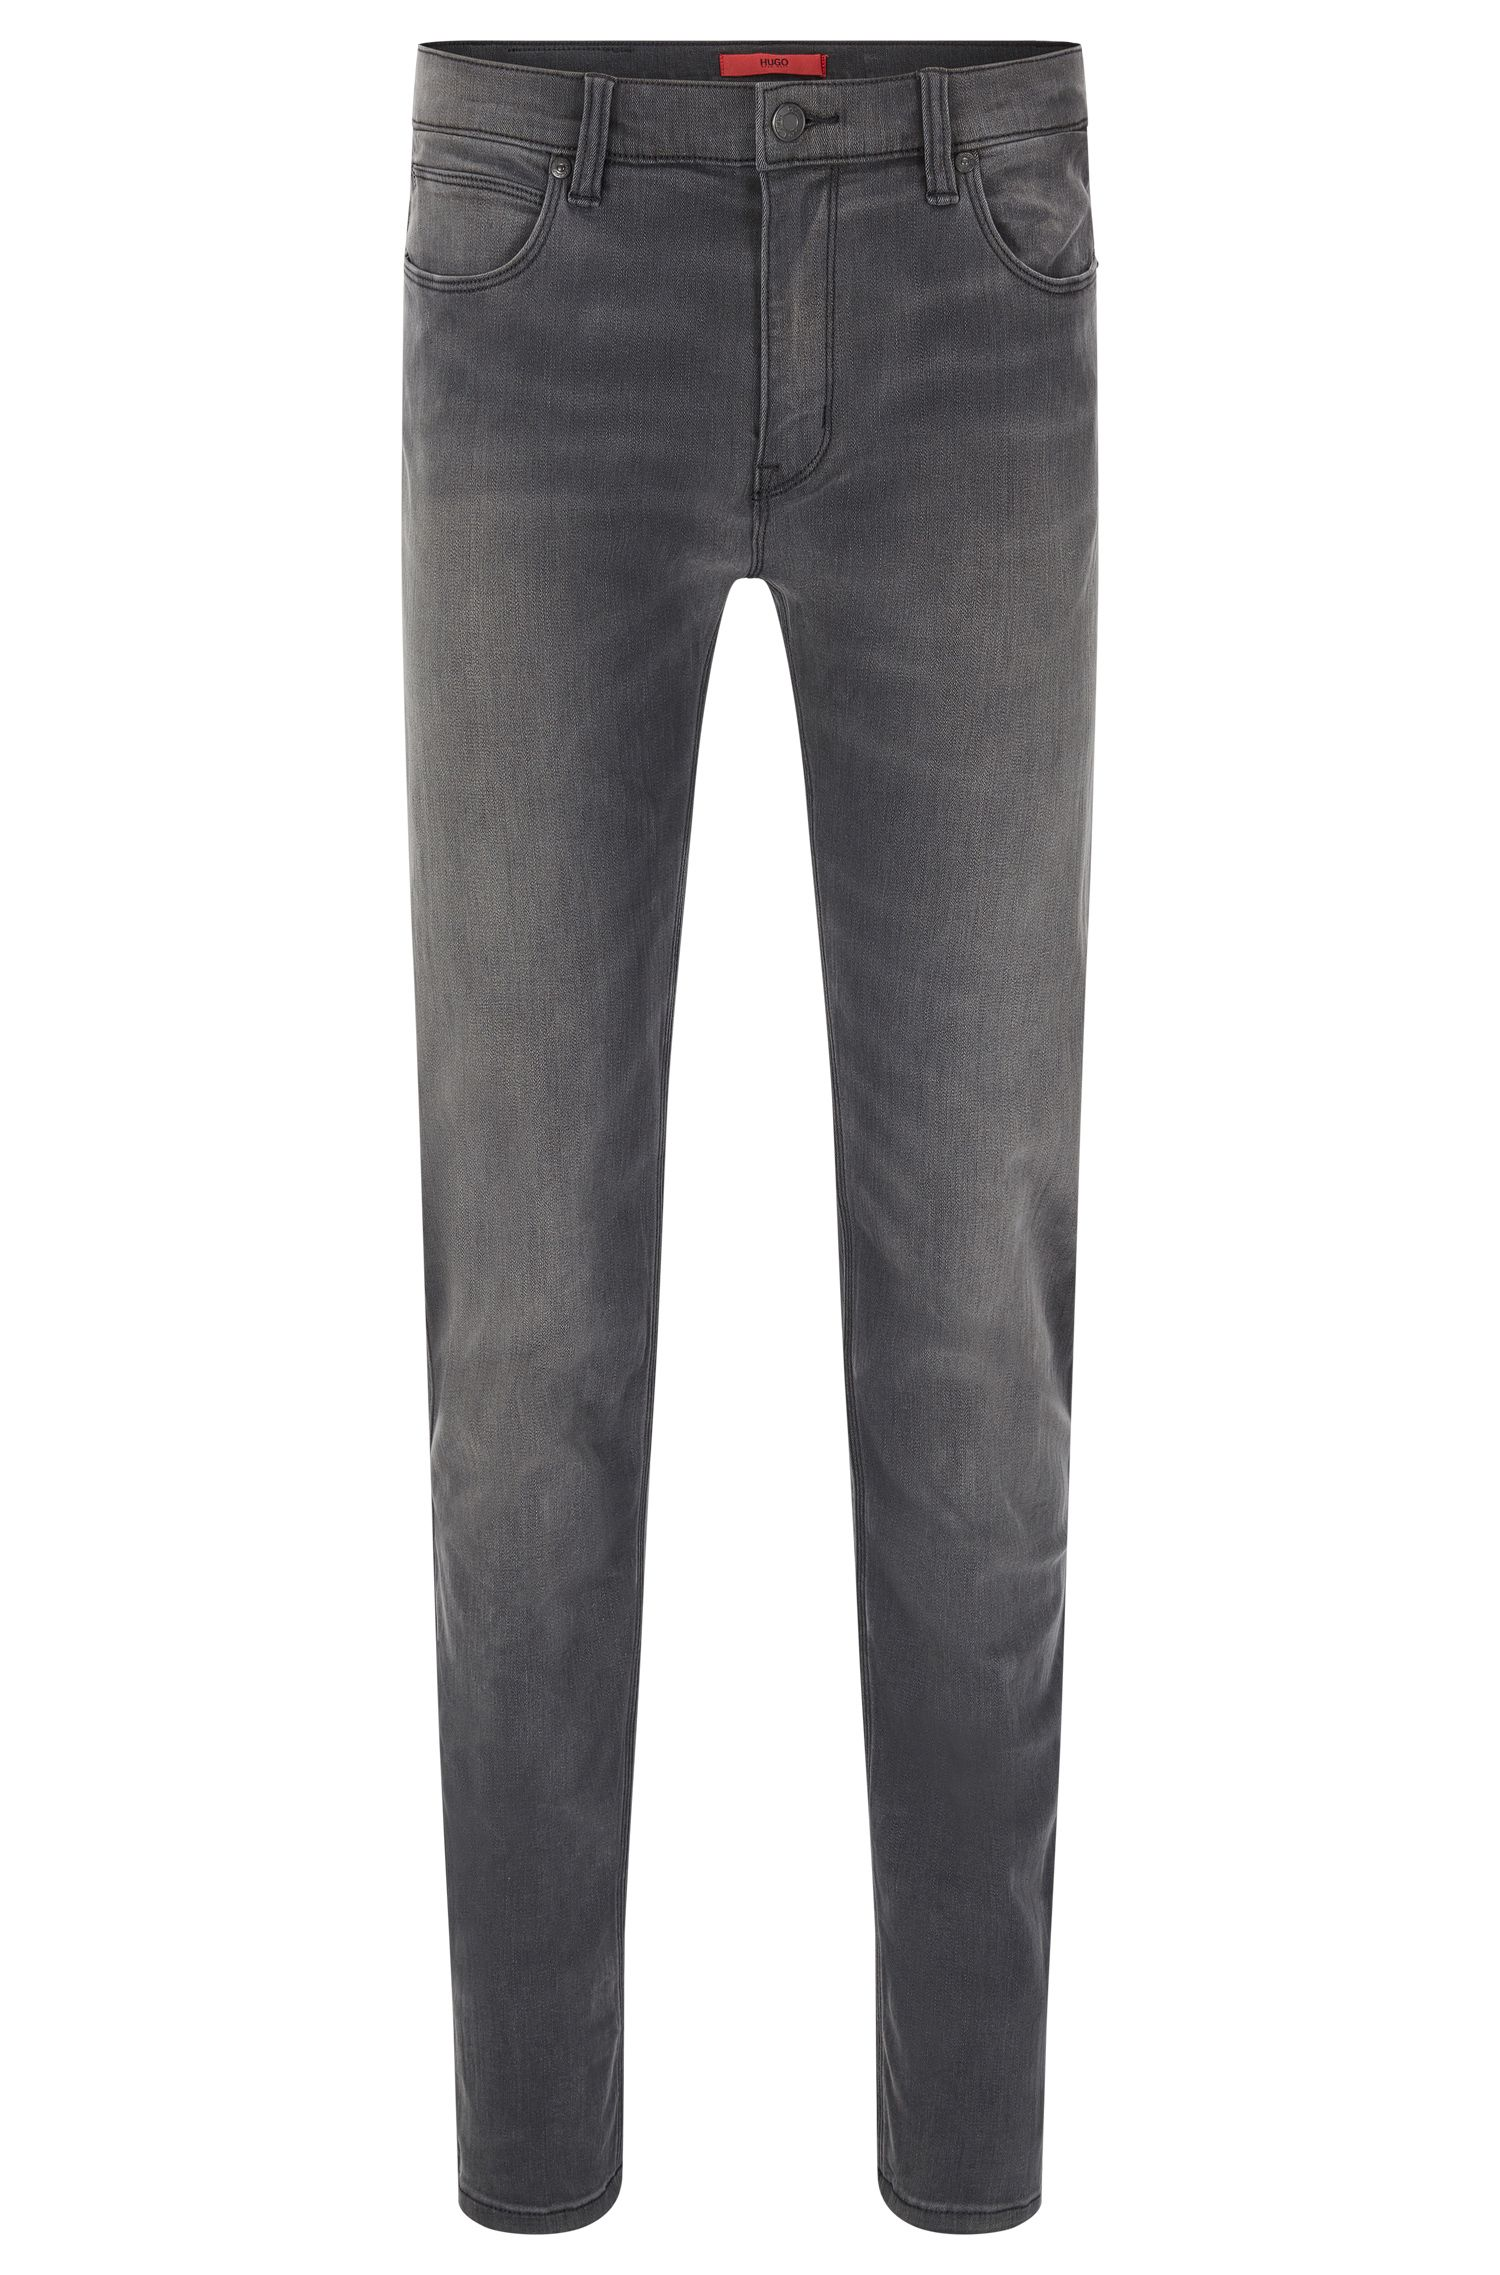 'HUGO 708' | Slim Fit, 10 oz Brushed Stretch Cotton Jeans